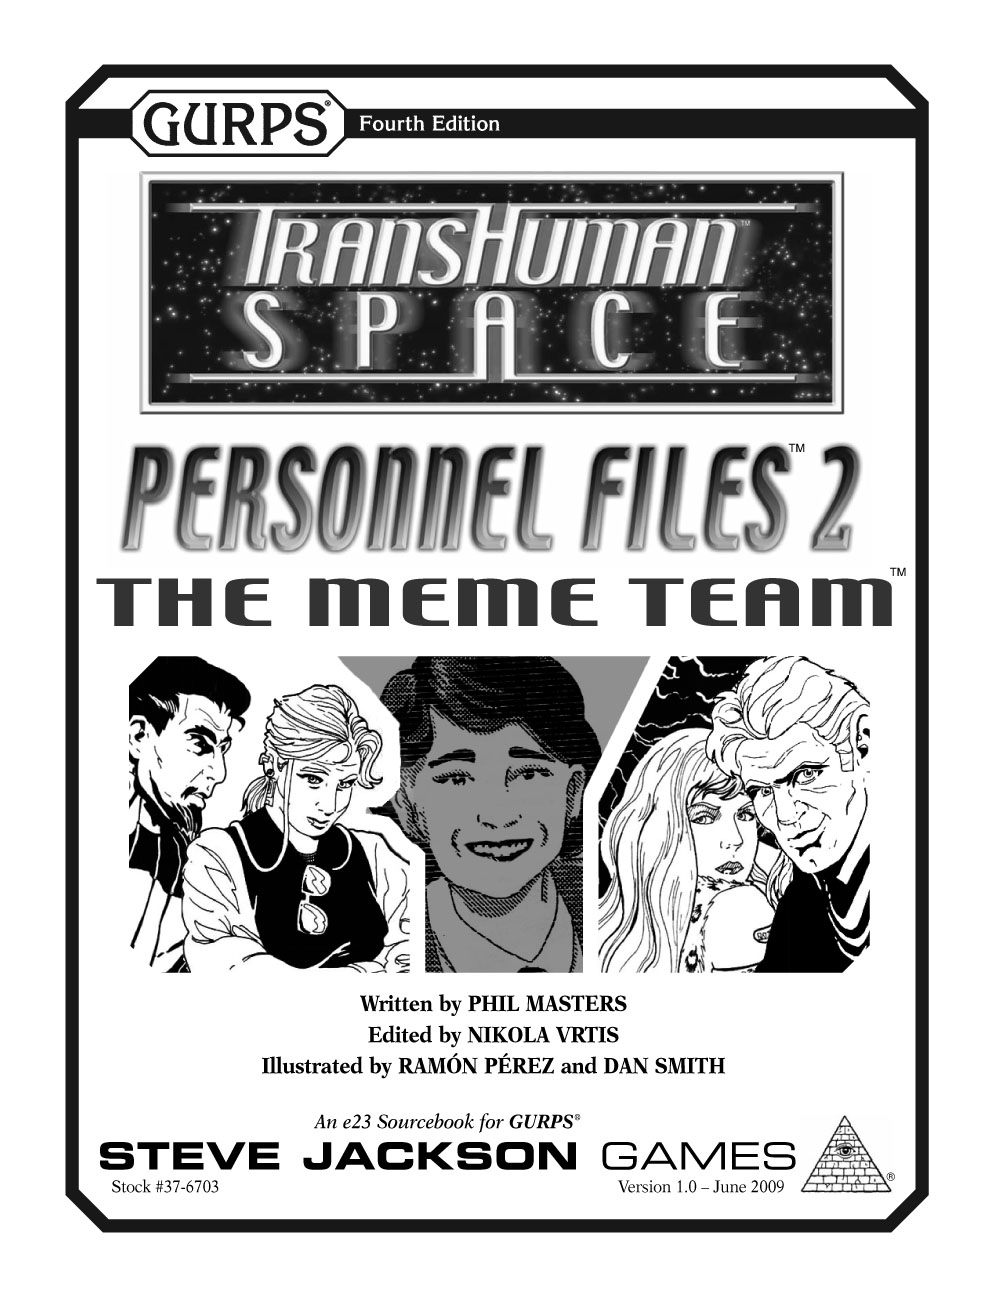 GURPS Transhuman Space: Personnel Files 2 – The Meme Team